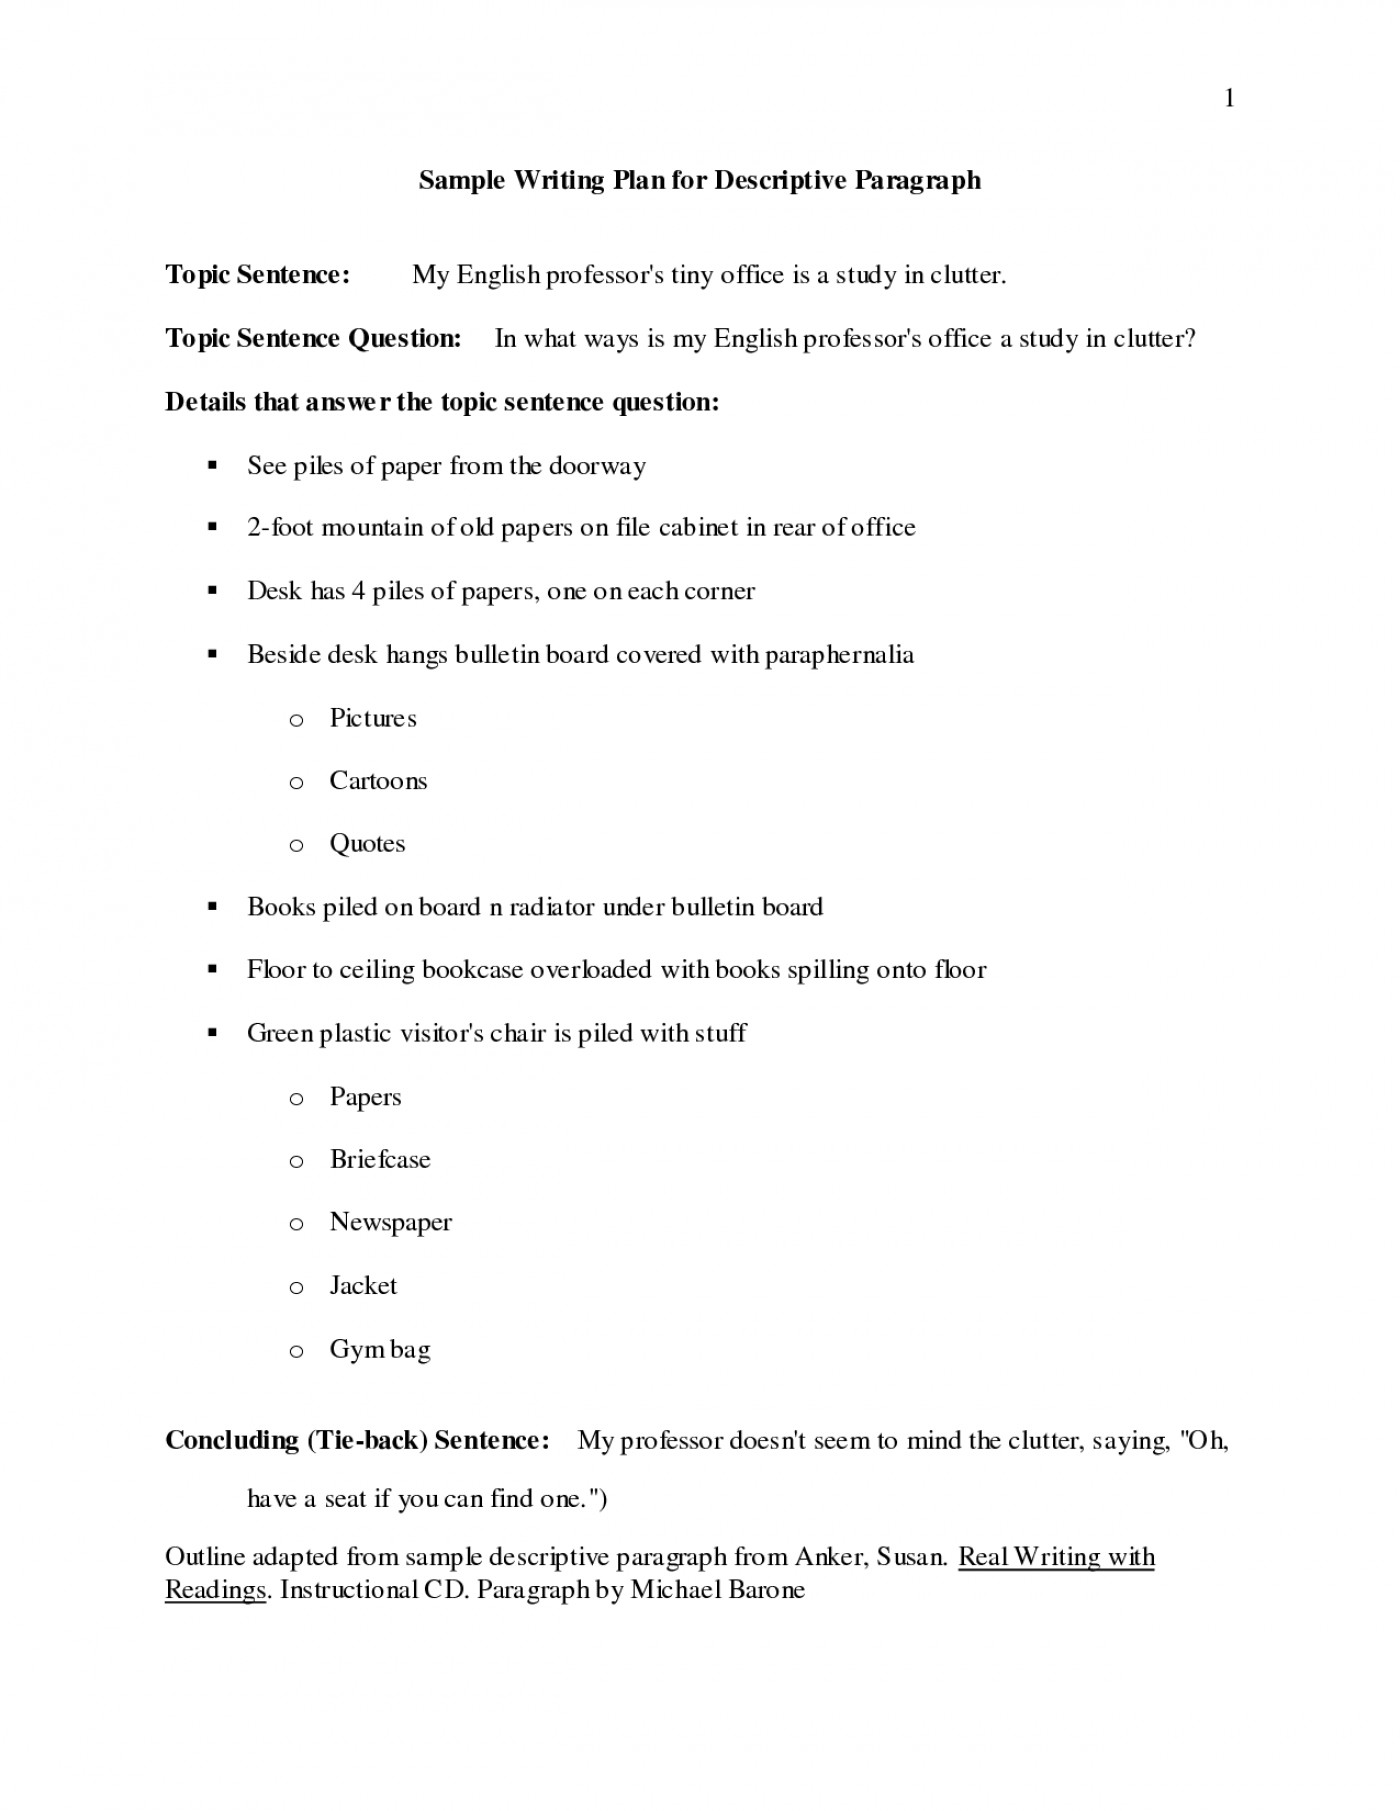 024 Essay Example Descriptive Outline Examples 448810 Impressive Writing Format Pdf About A Place You Have Visited Introduction Paragraph 1400